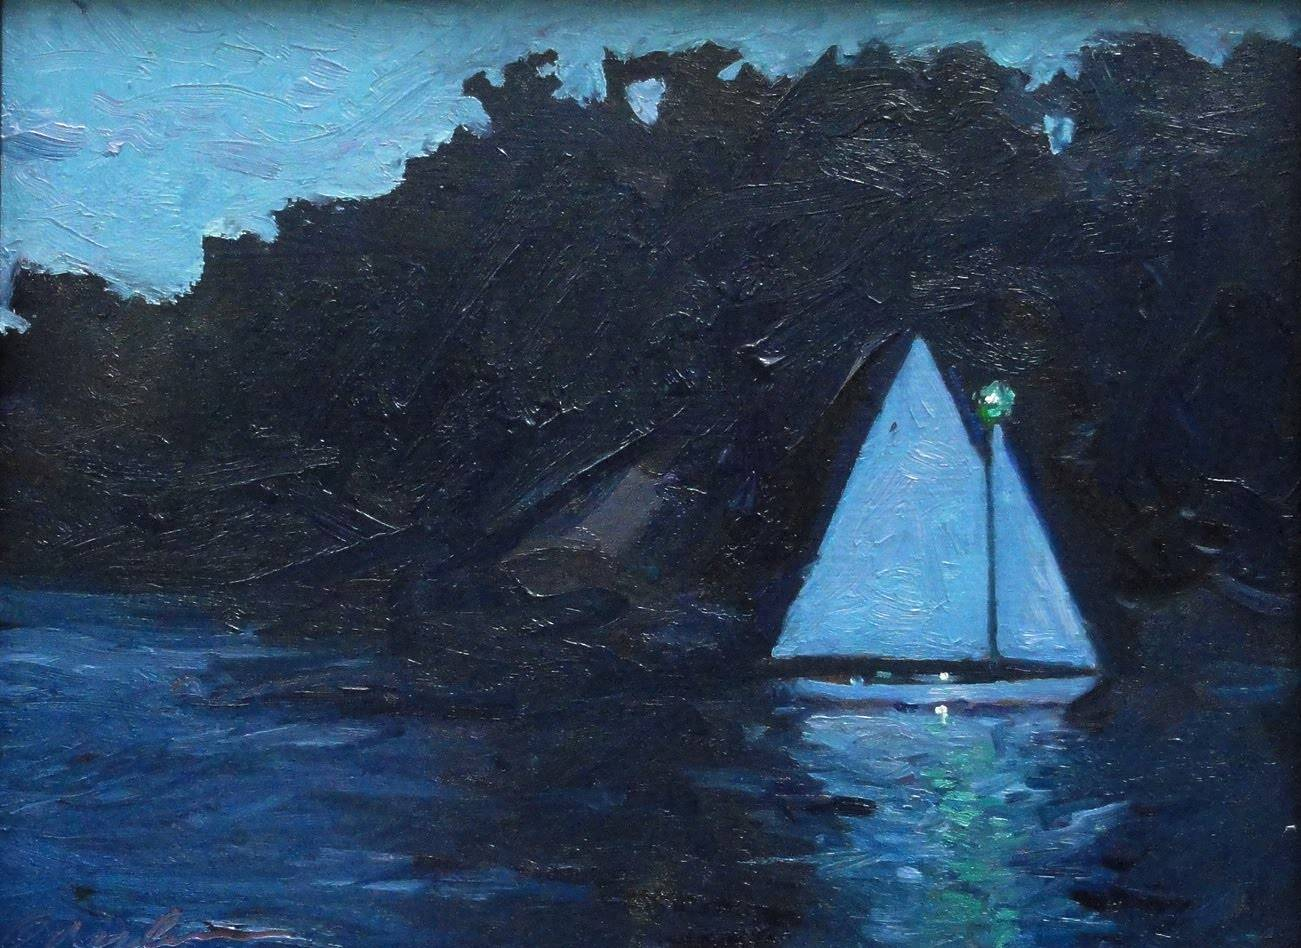 Night Sail 9x12 in oil by Michael  Gaudreau